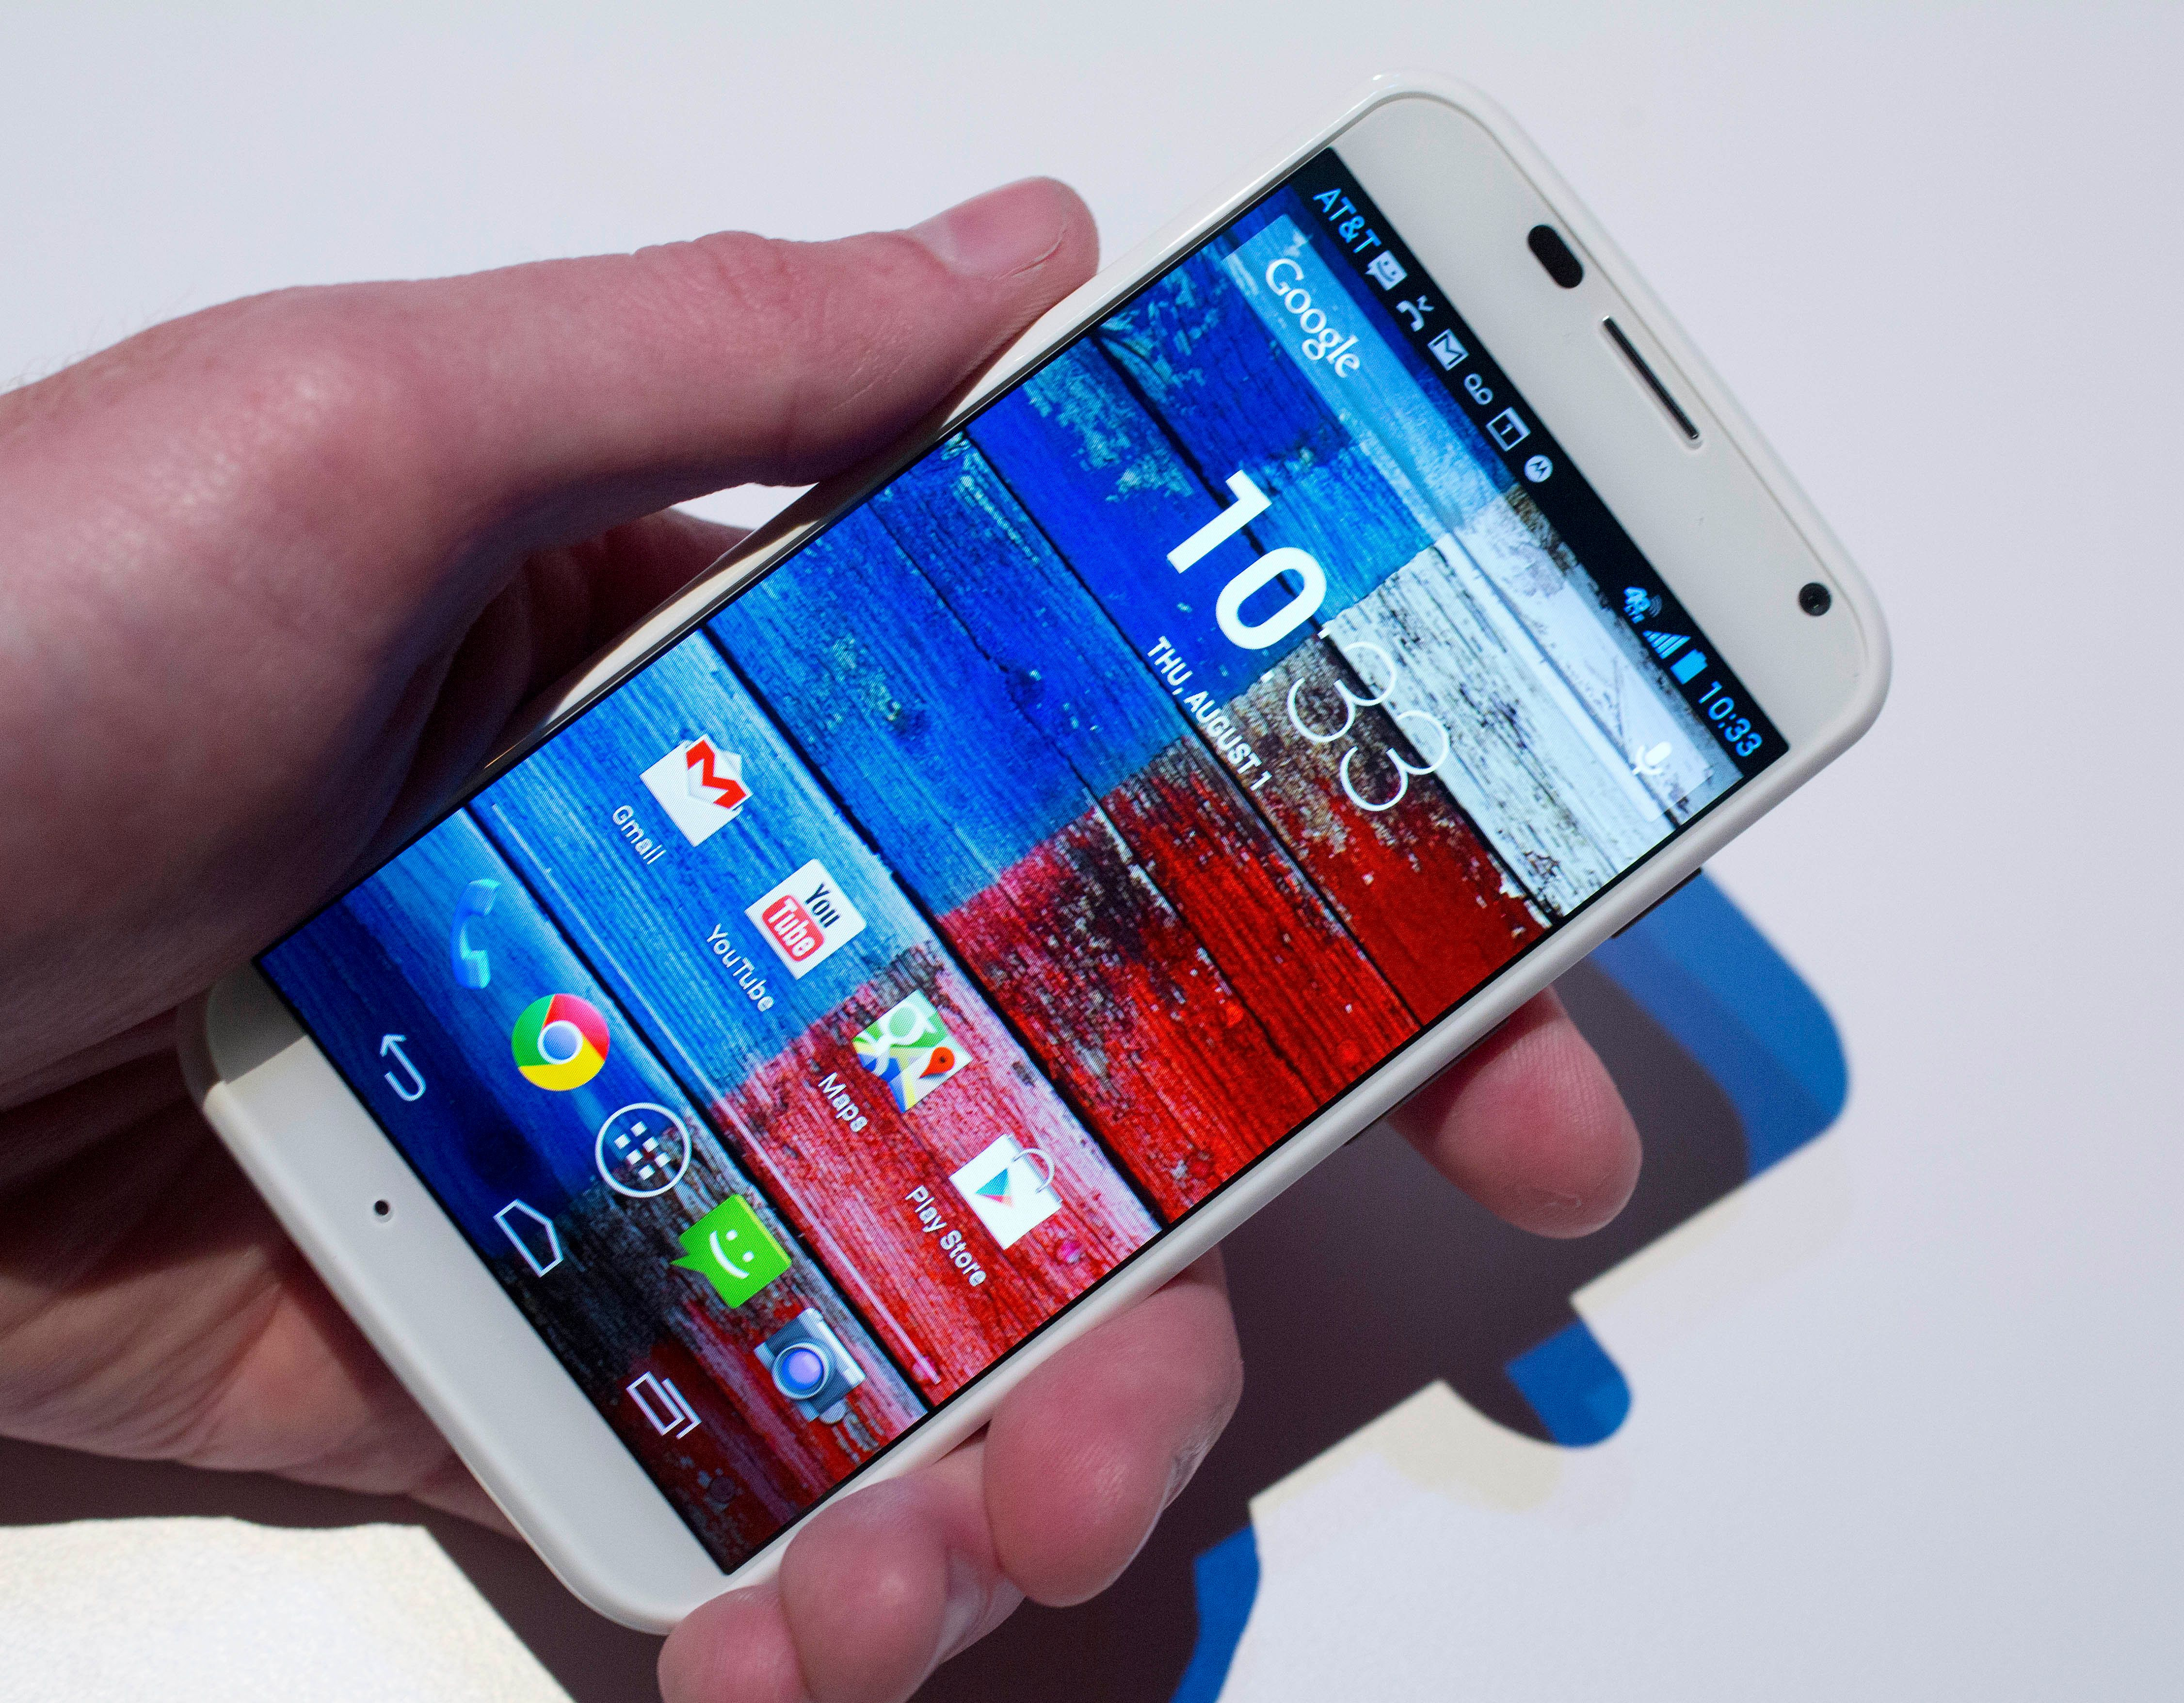 A Dangerous New Android Virus Has Already Breached Over A Million